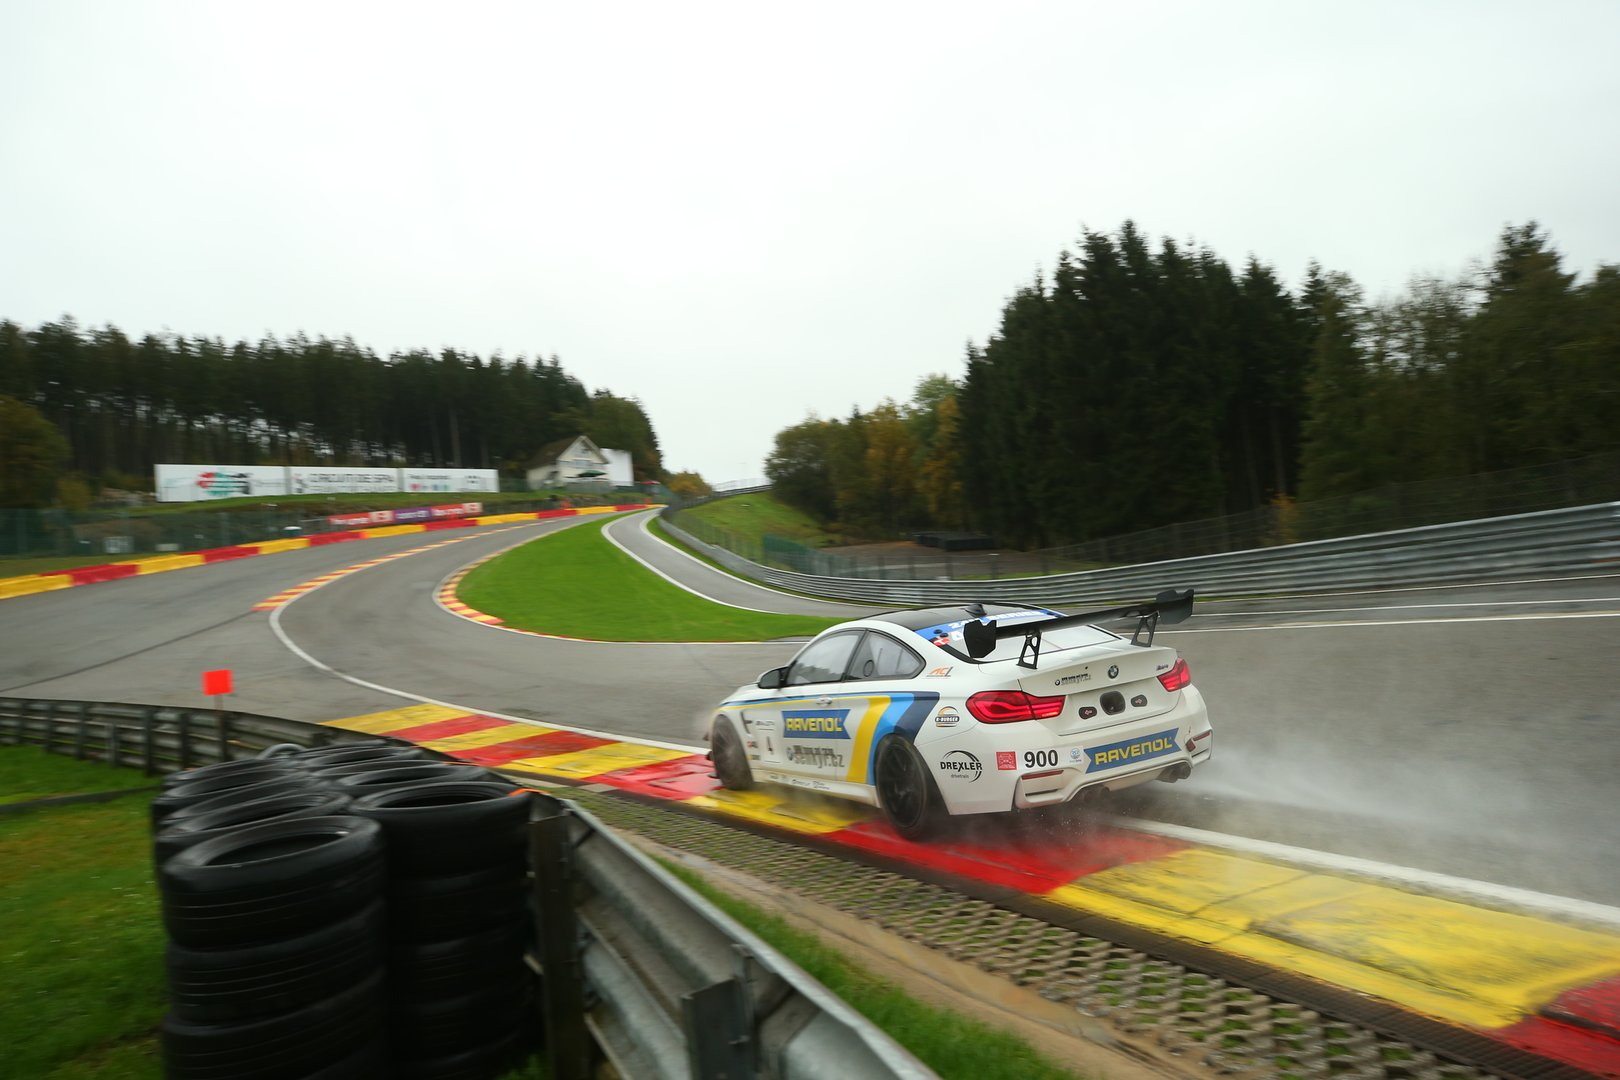 Spa - Francorchamps